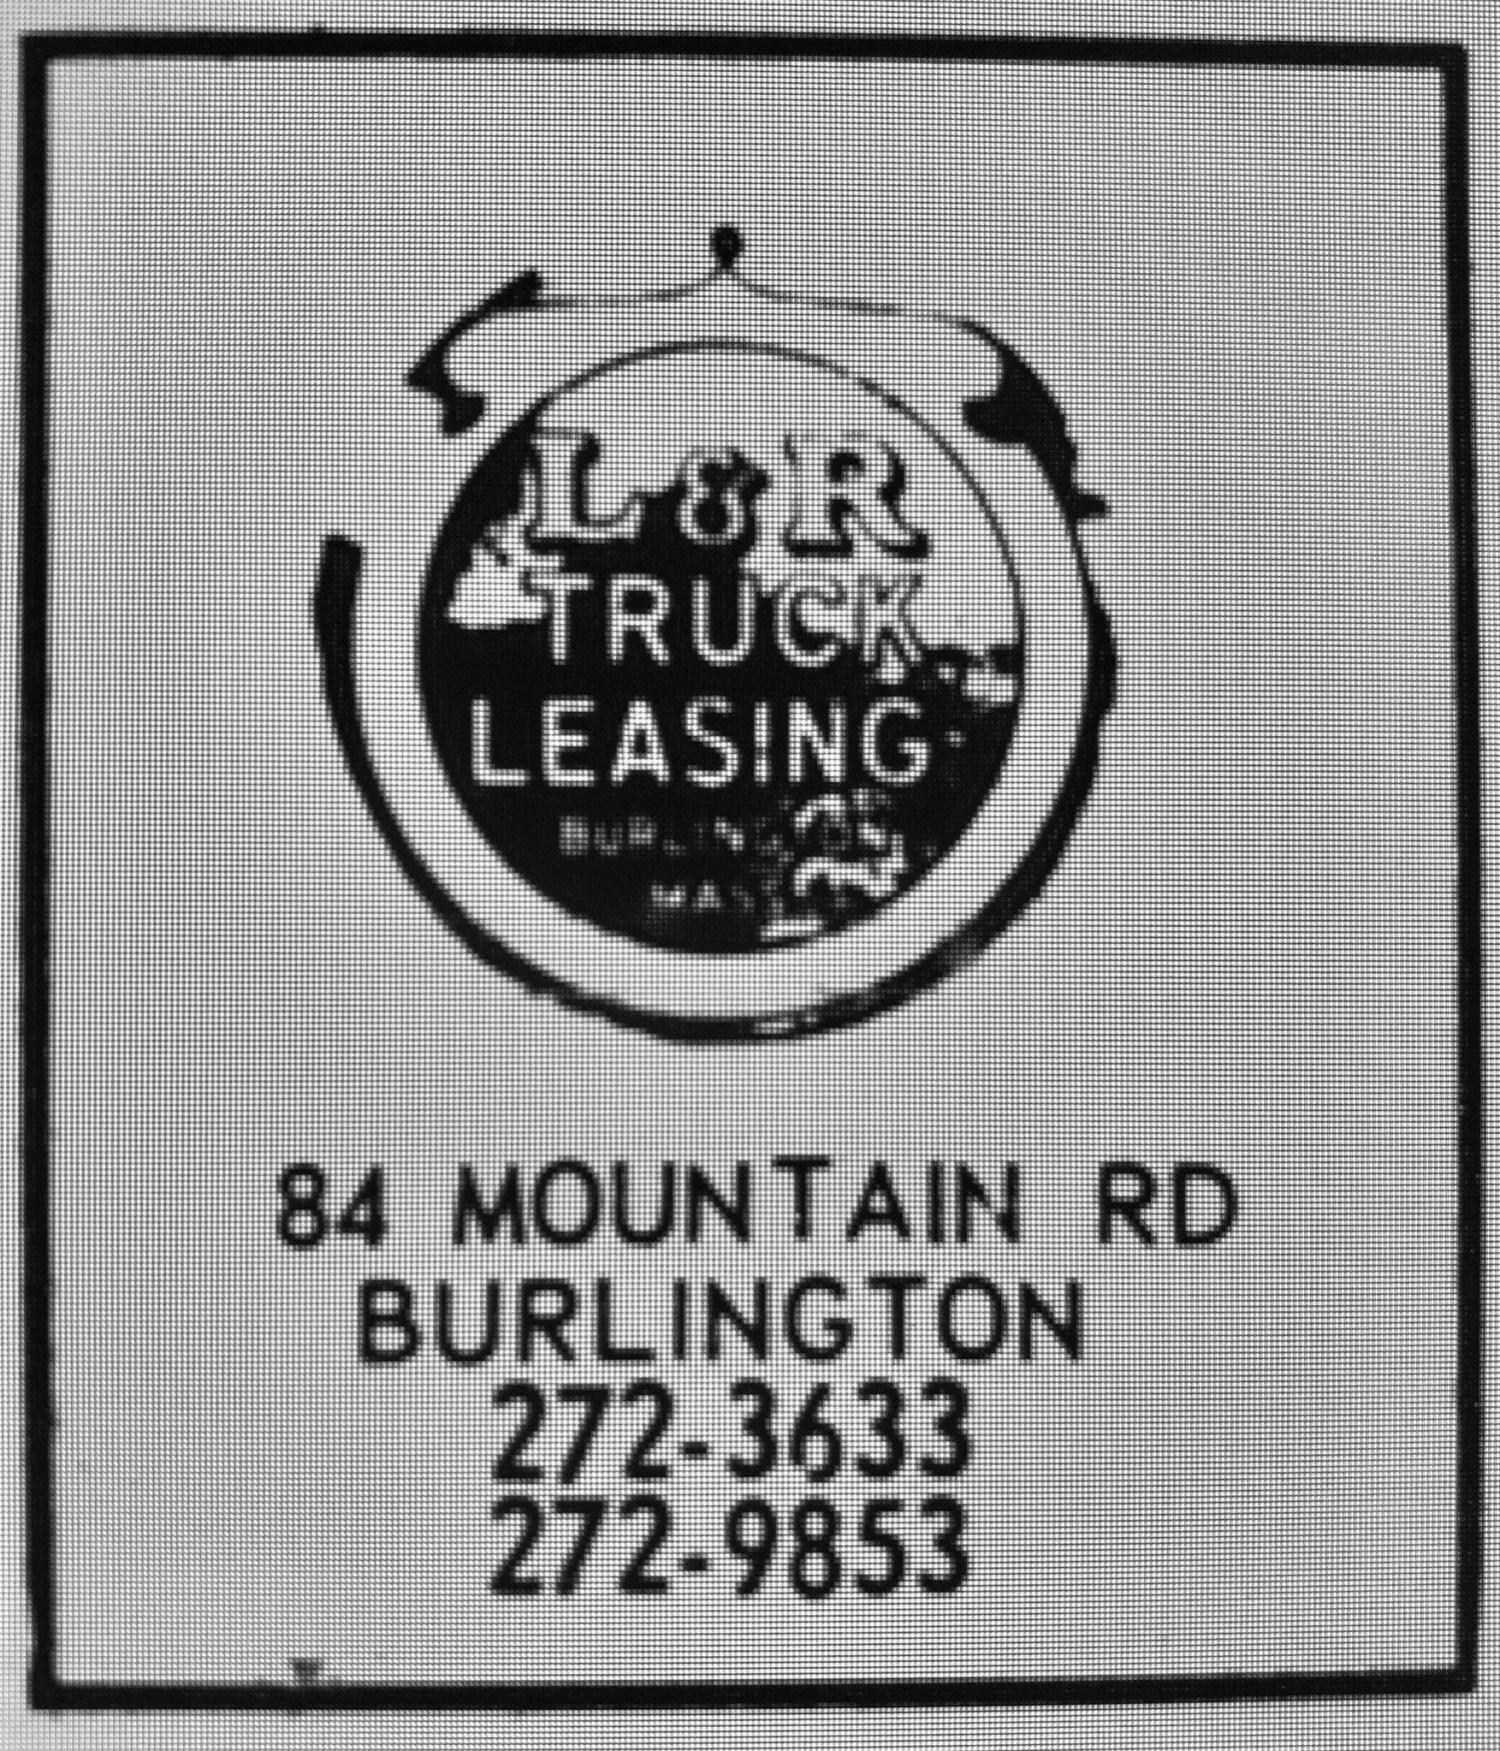 L&R Truck Leasing, Burlington MA